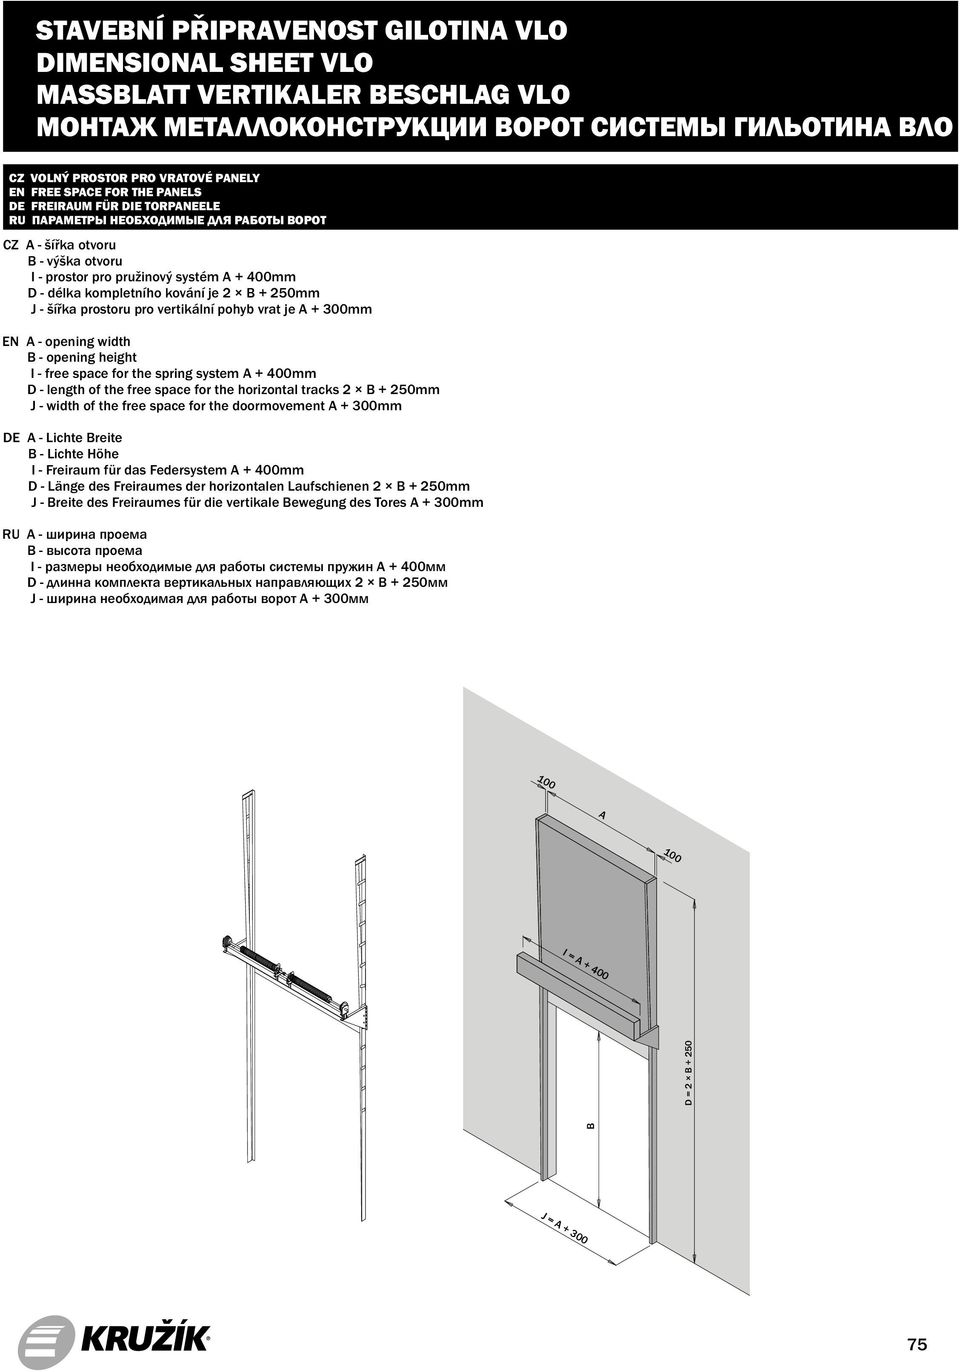 system A + 400mm D - length of the free space for the horizontal tracks 2 B + 250mm J - width of the free space for the doormovement A + 300mm DE A - Lichte Breite B - Lichte Höhe I - Freiraum für